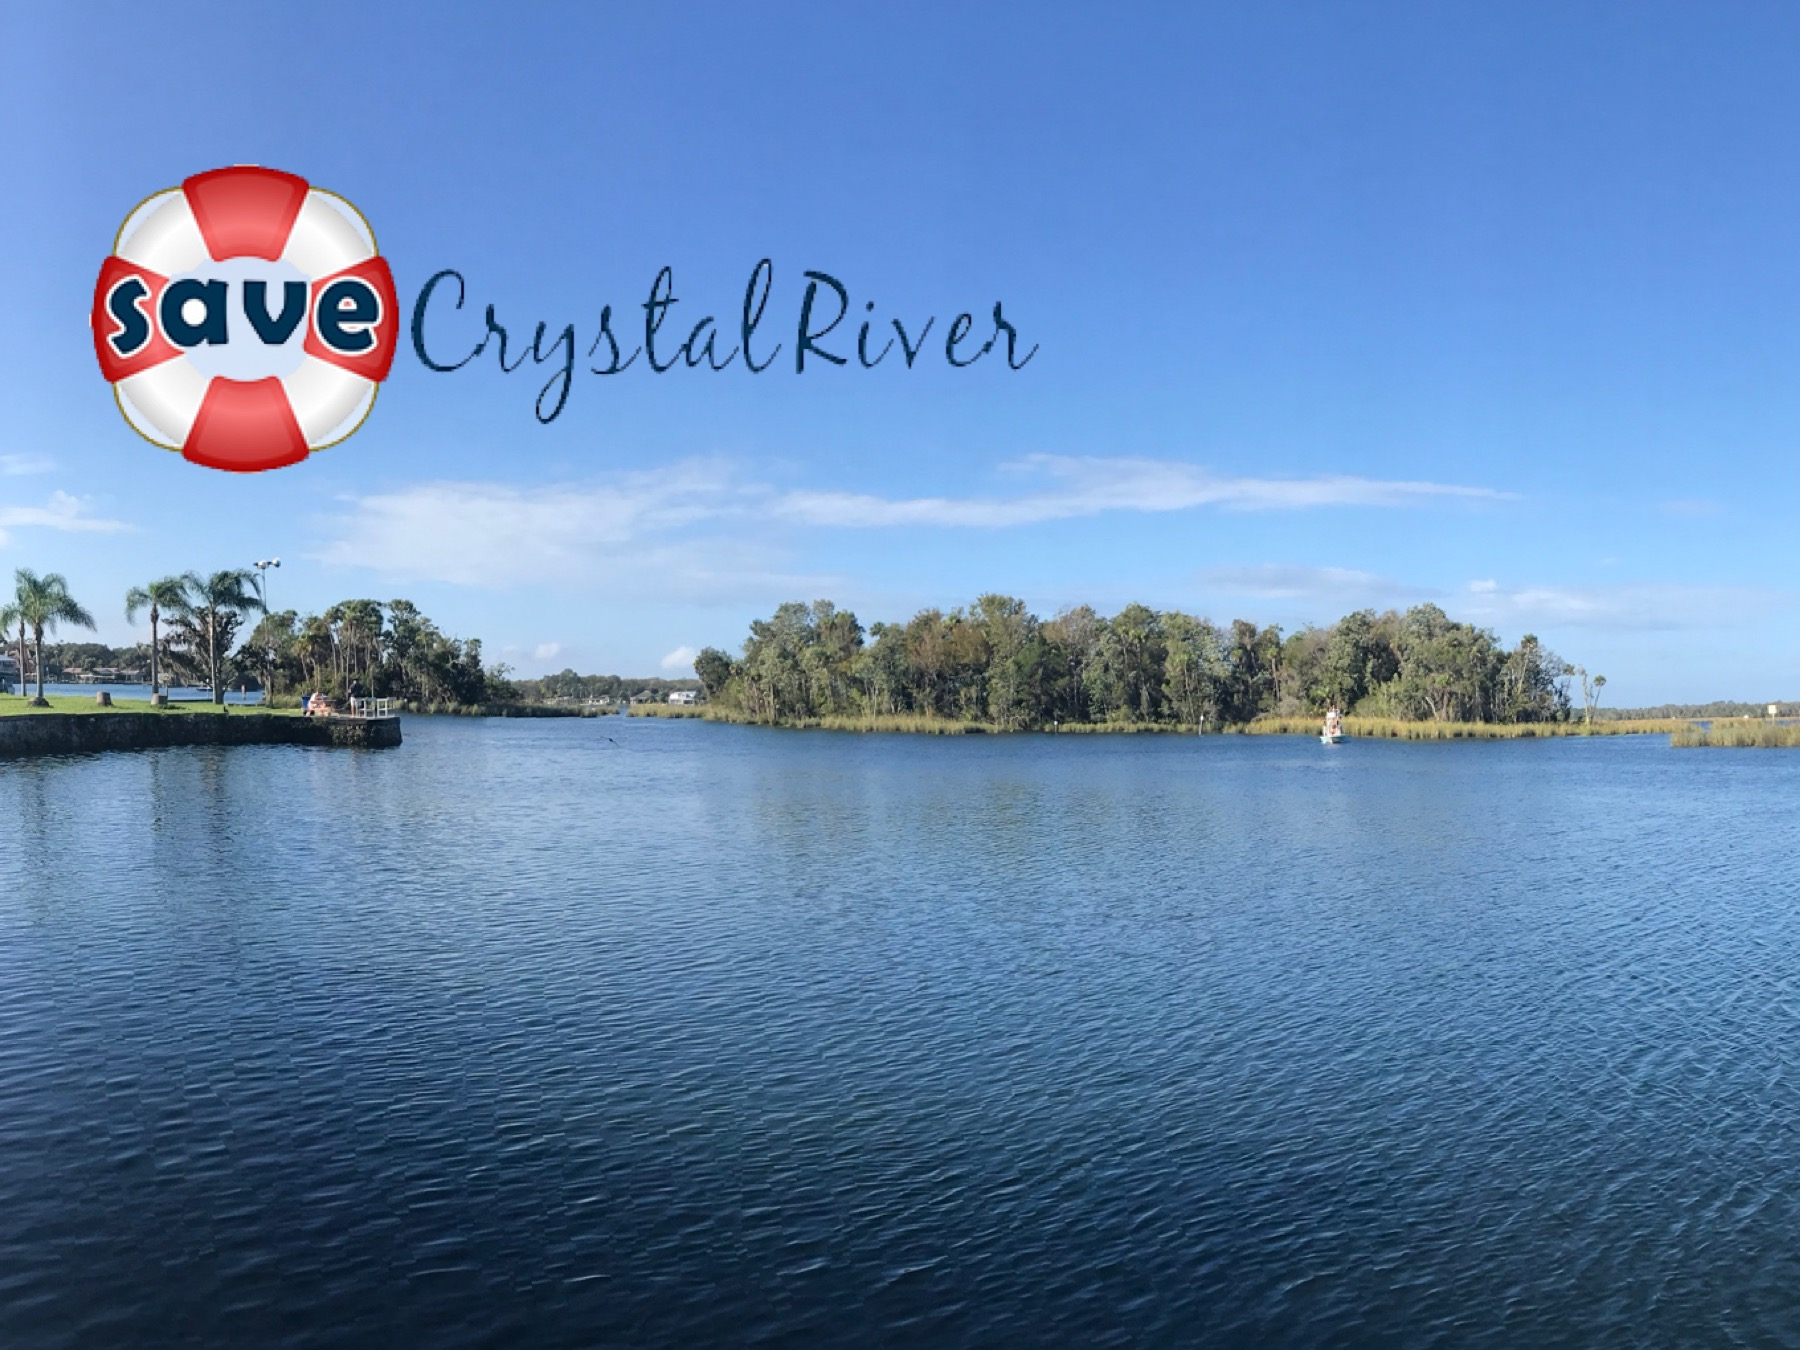 Save Crystal River Logo